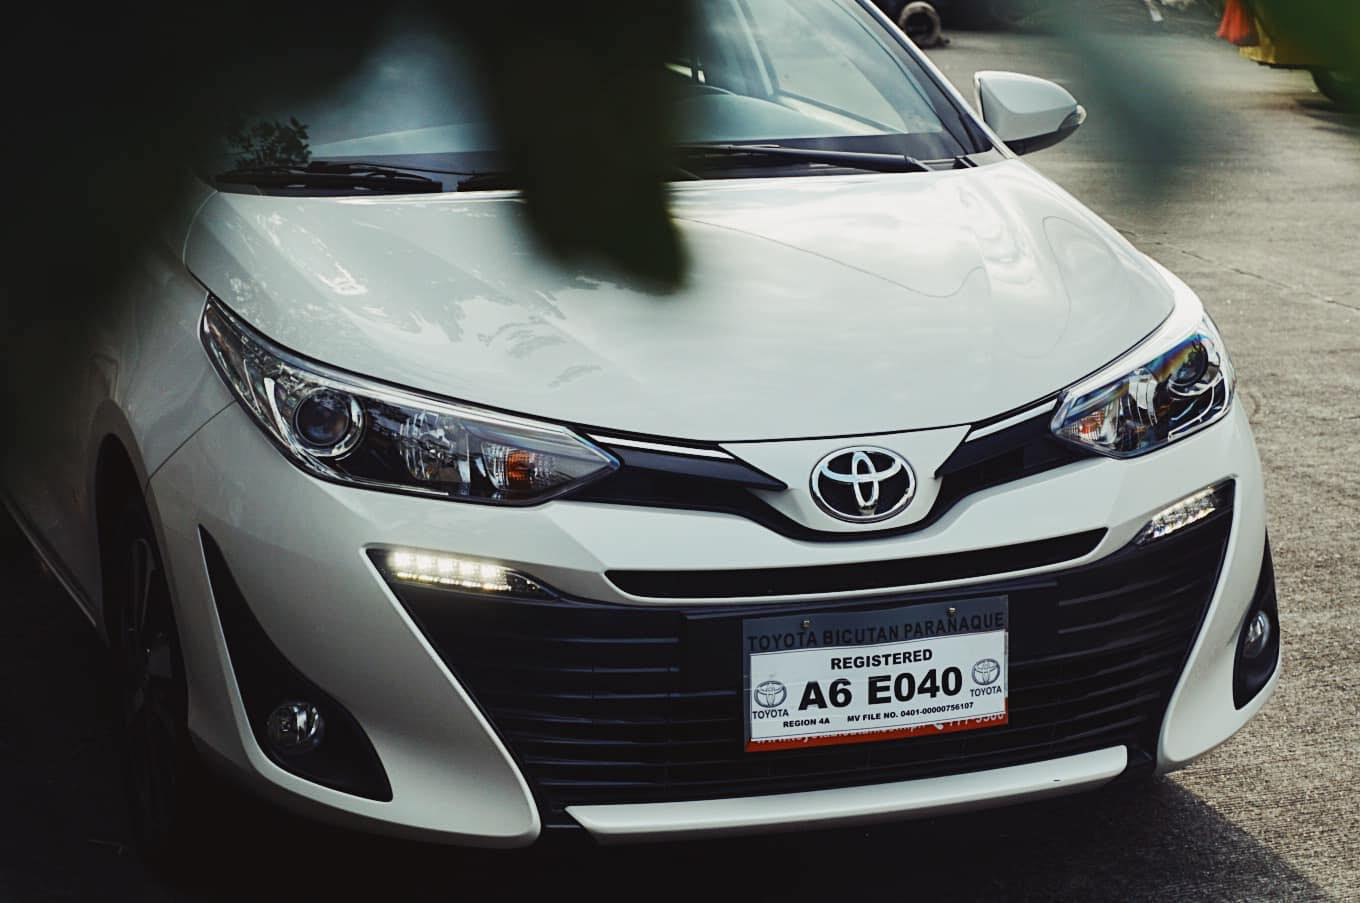 Save As Much As P100,000 Or Get Free Maintenance When You Buy A Toyota This May